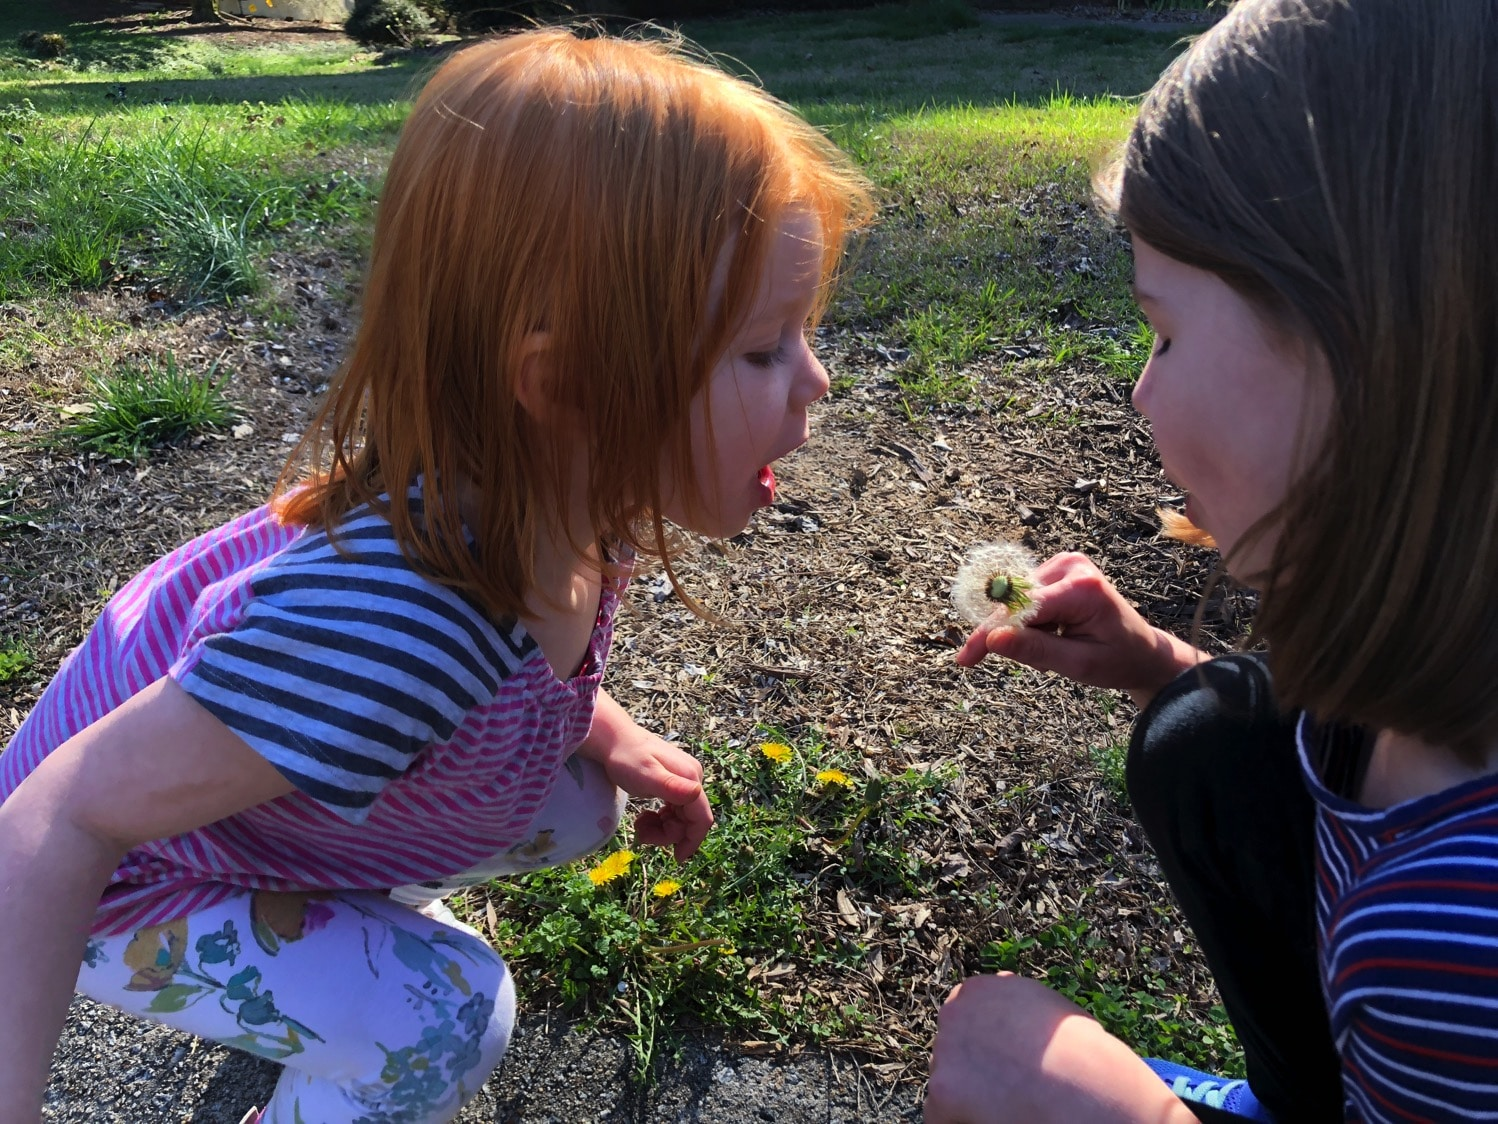 blowing dandelions